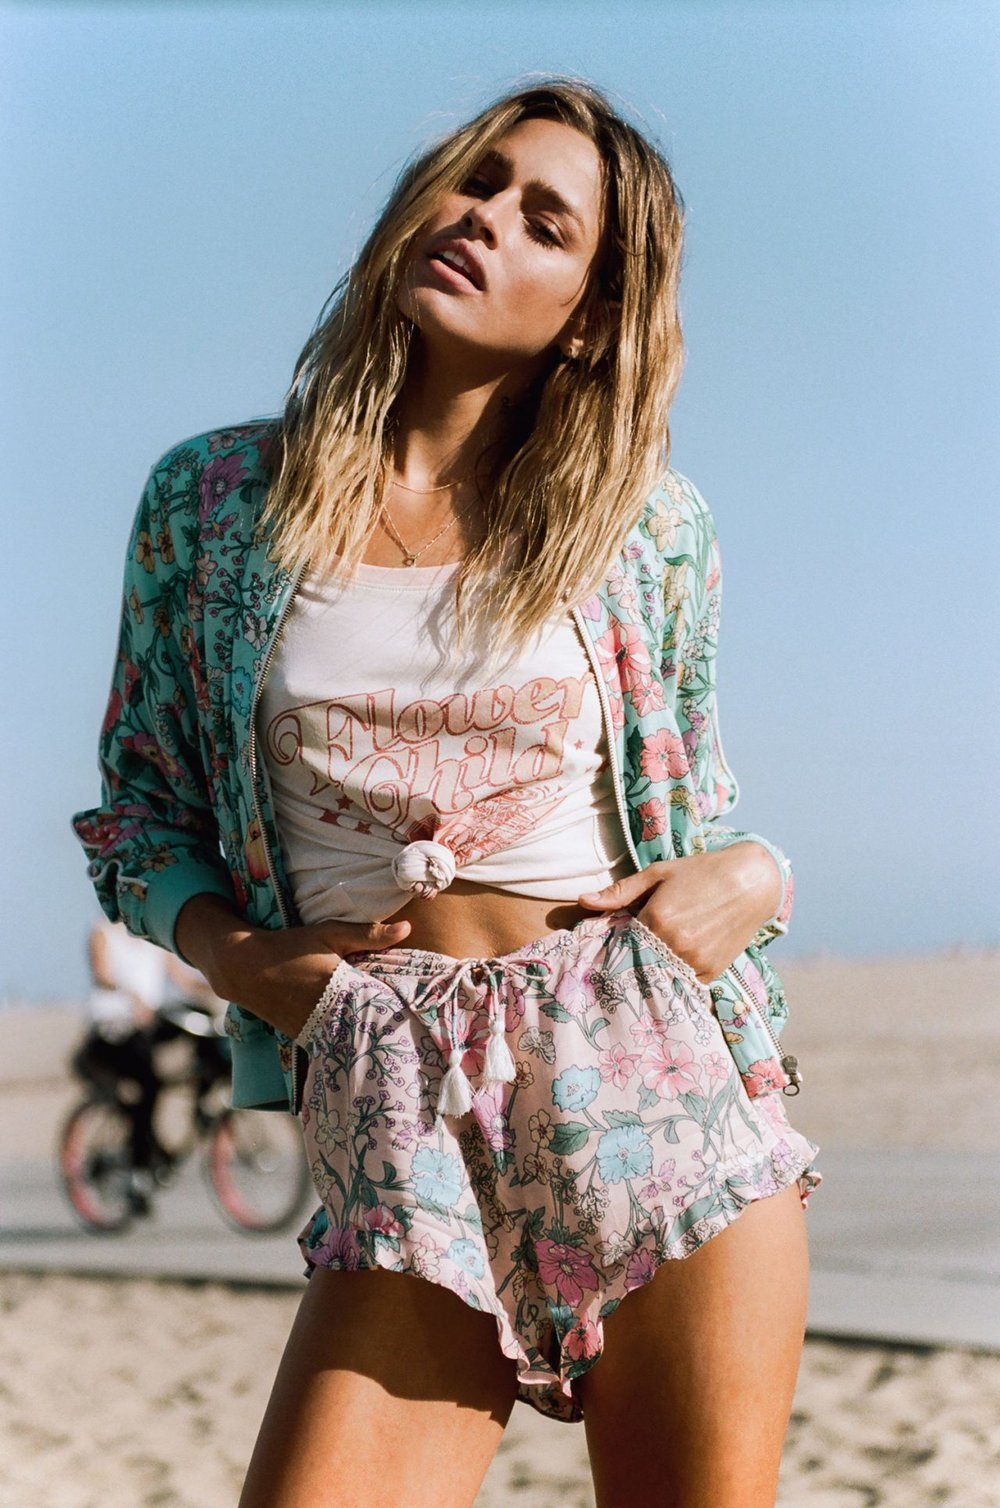 Flower-Child-Spell-the-Gypsy-Collective-JulyAugust-collection-Abby-Brothers-shot-by-Brydie-Mack69-1280x1930.jpg